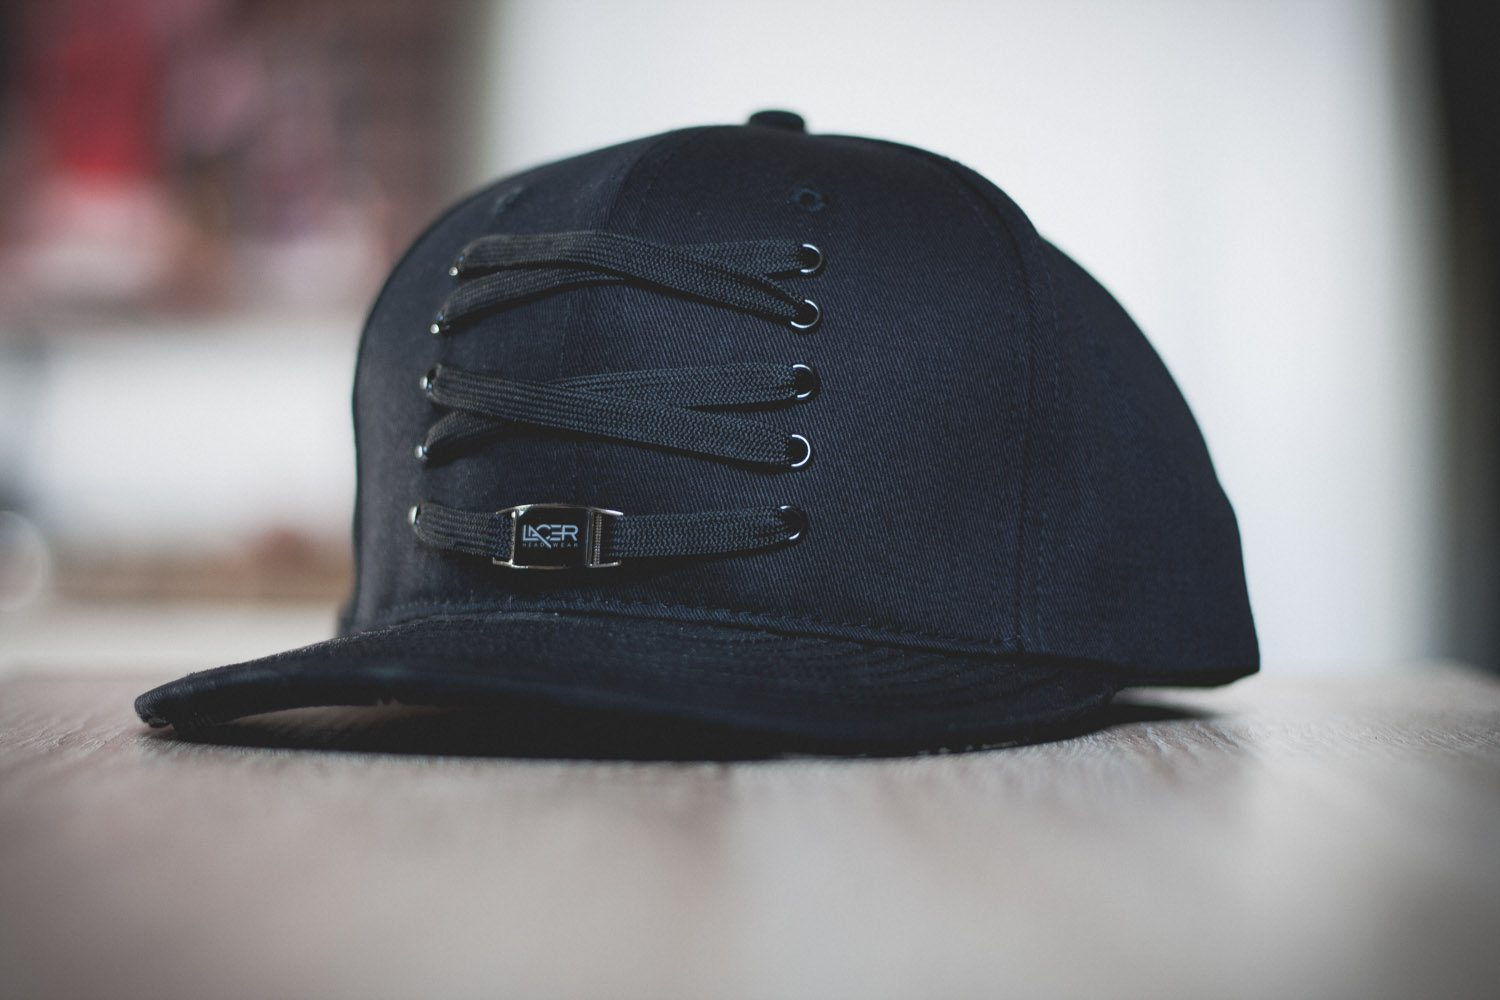 Lacer Headwear All Black Review 14